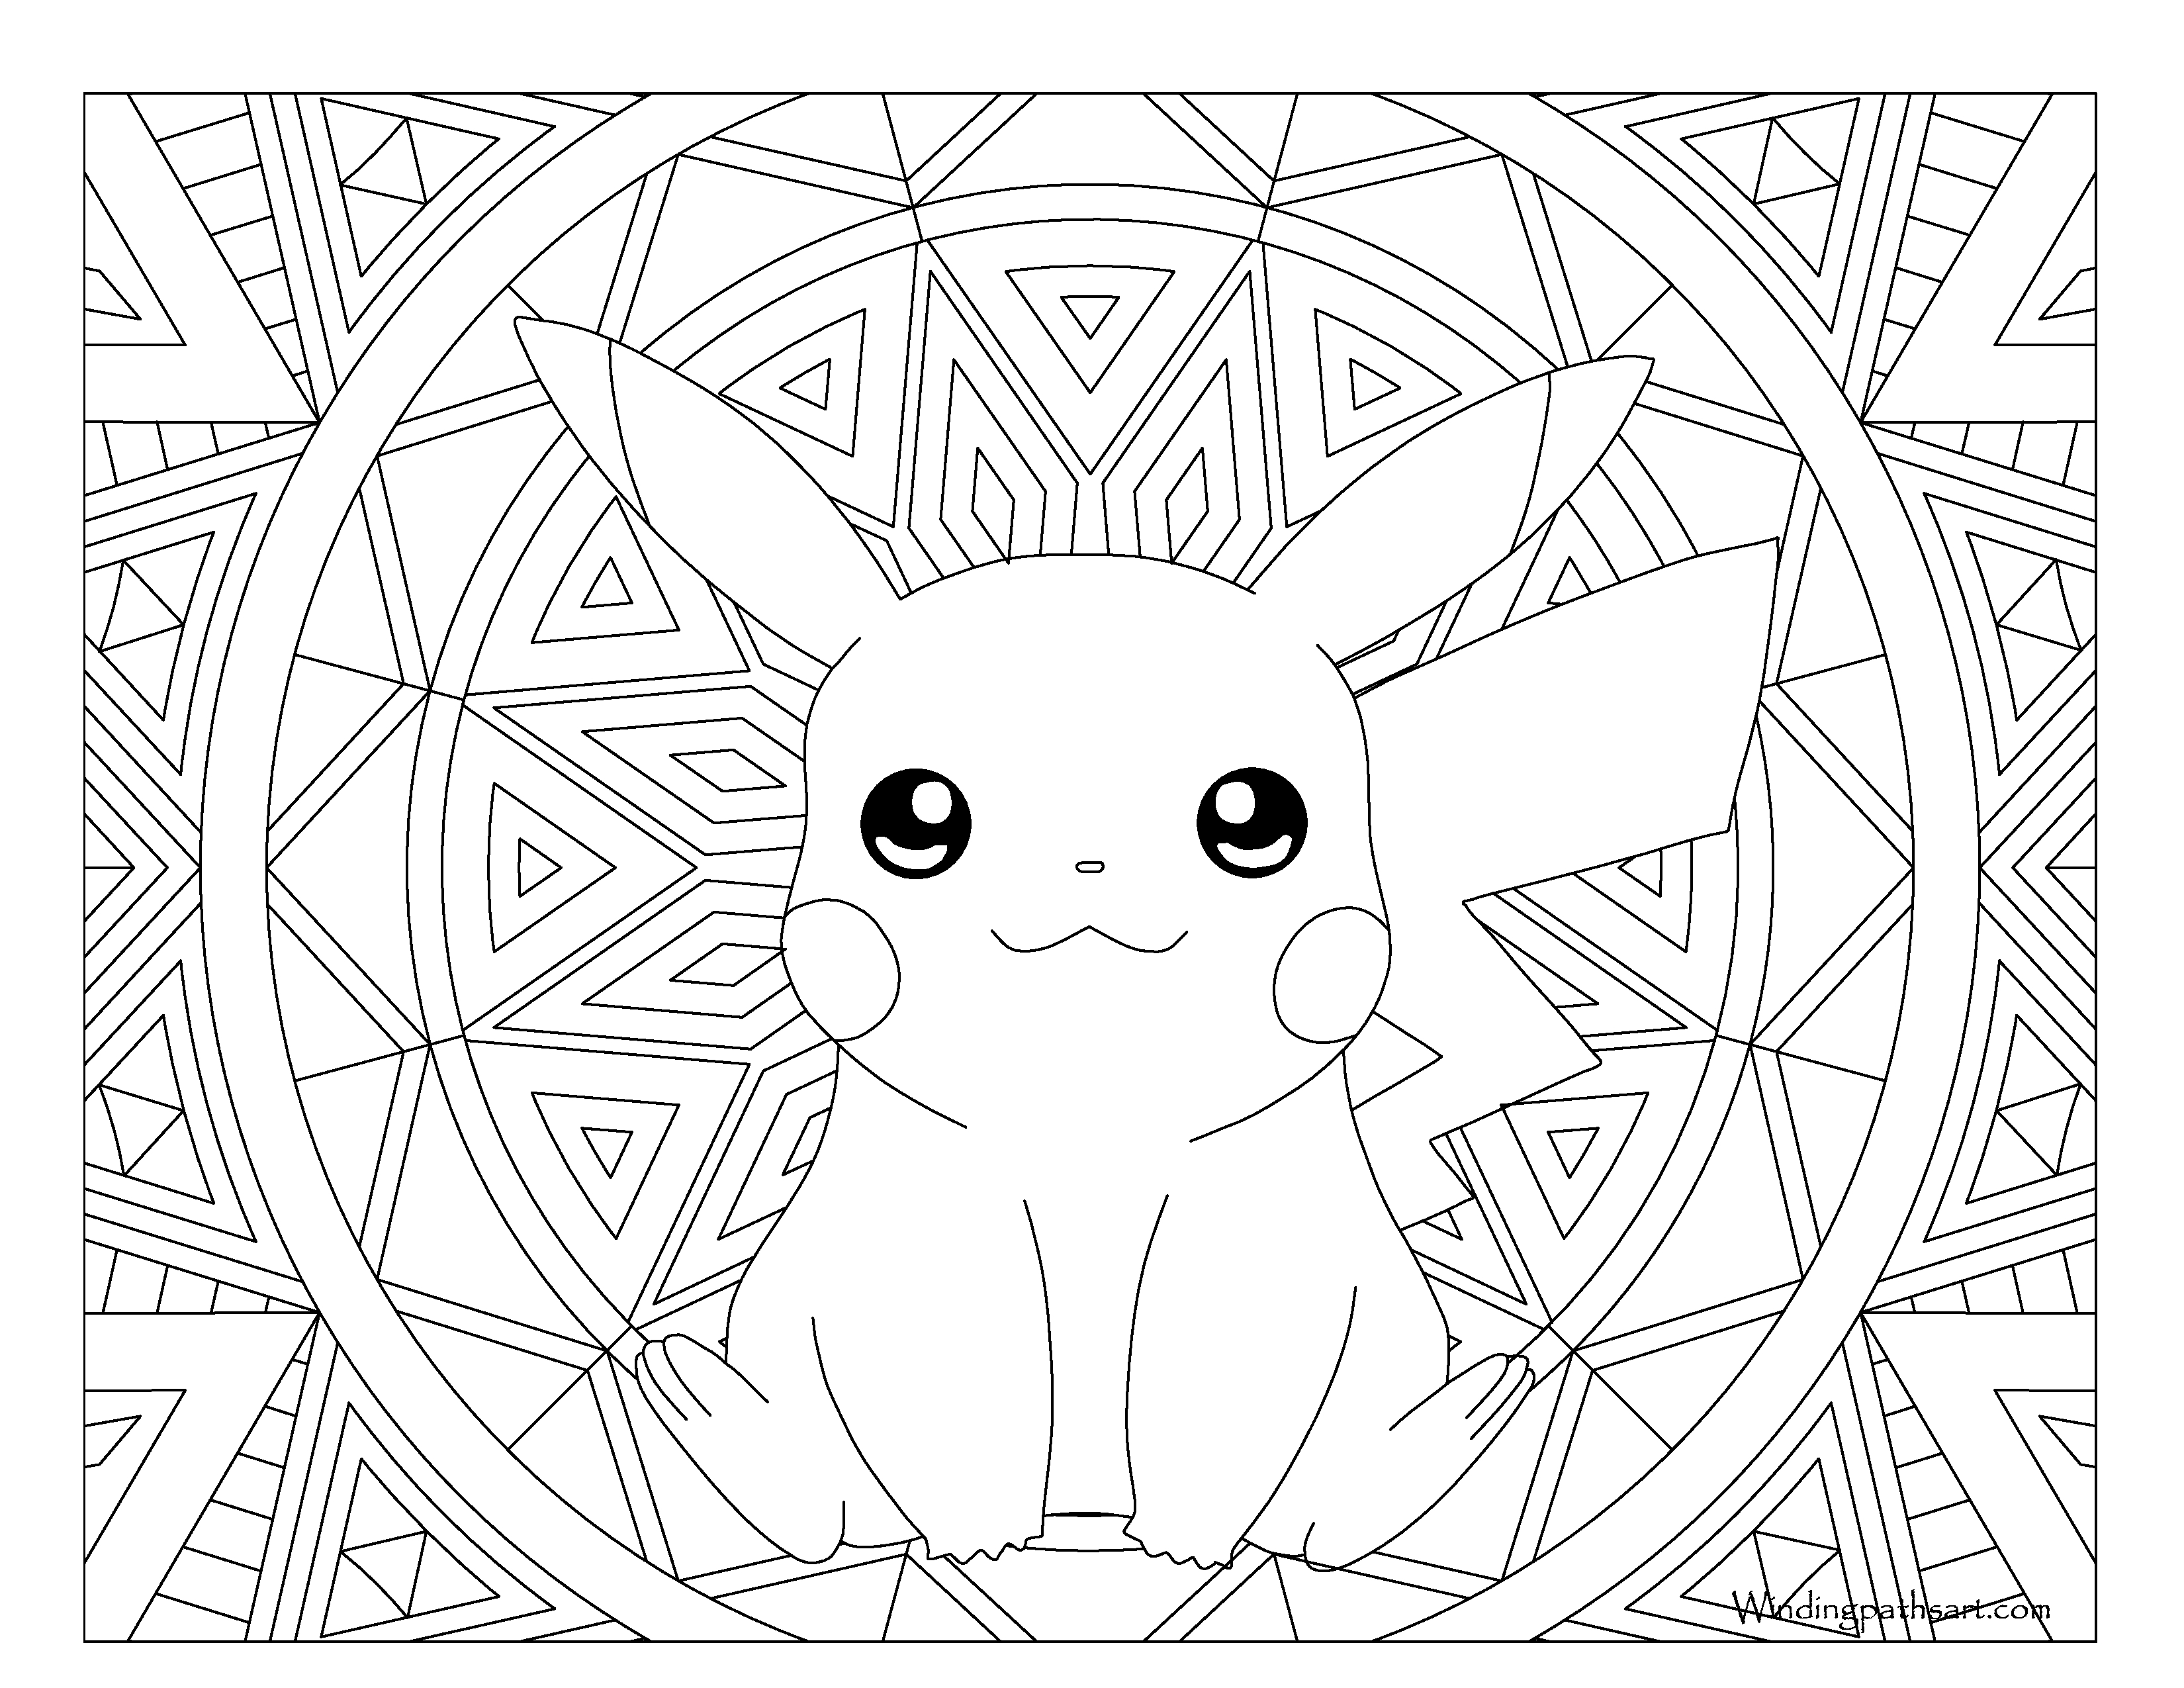 Free Printable Pokemon Coloring Pages Free Printable Pokemon Coloring Pages Best Image To Print 19 In